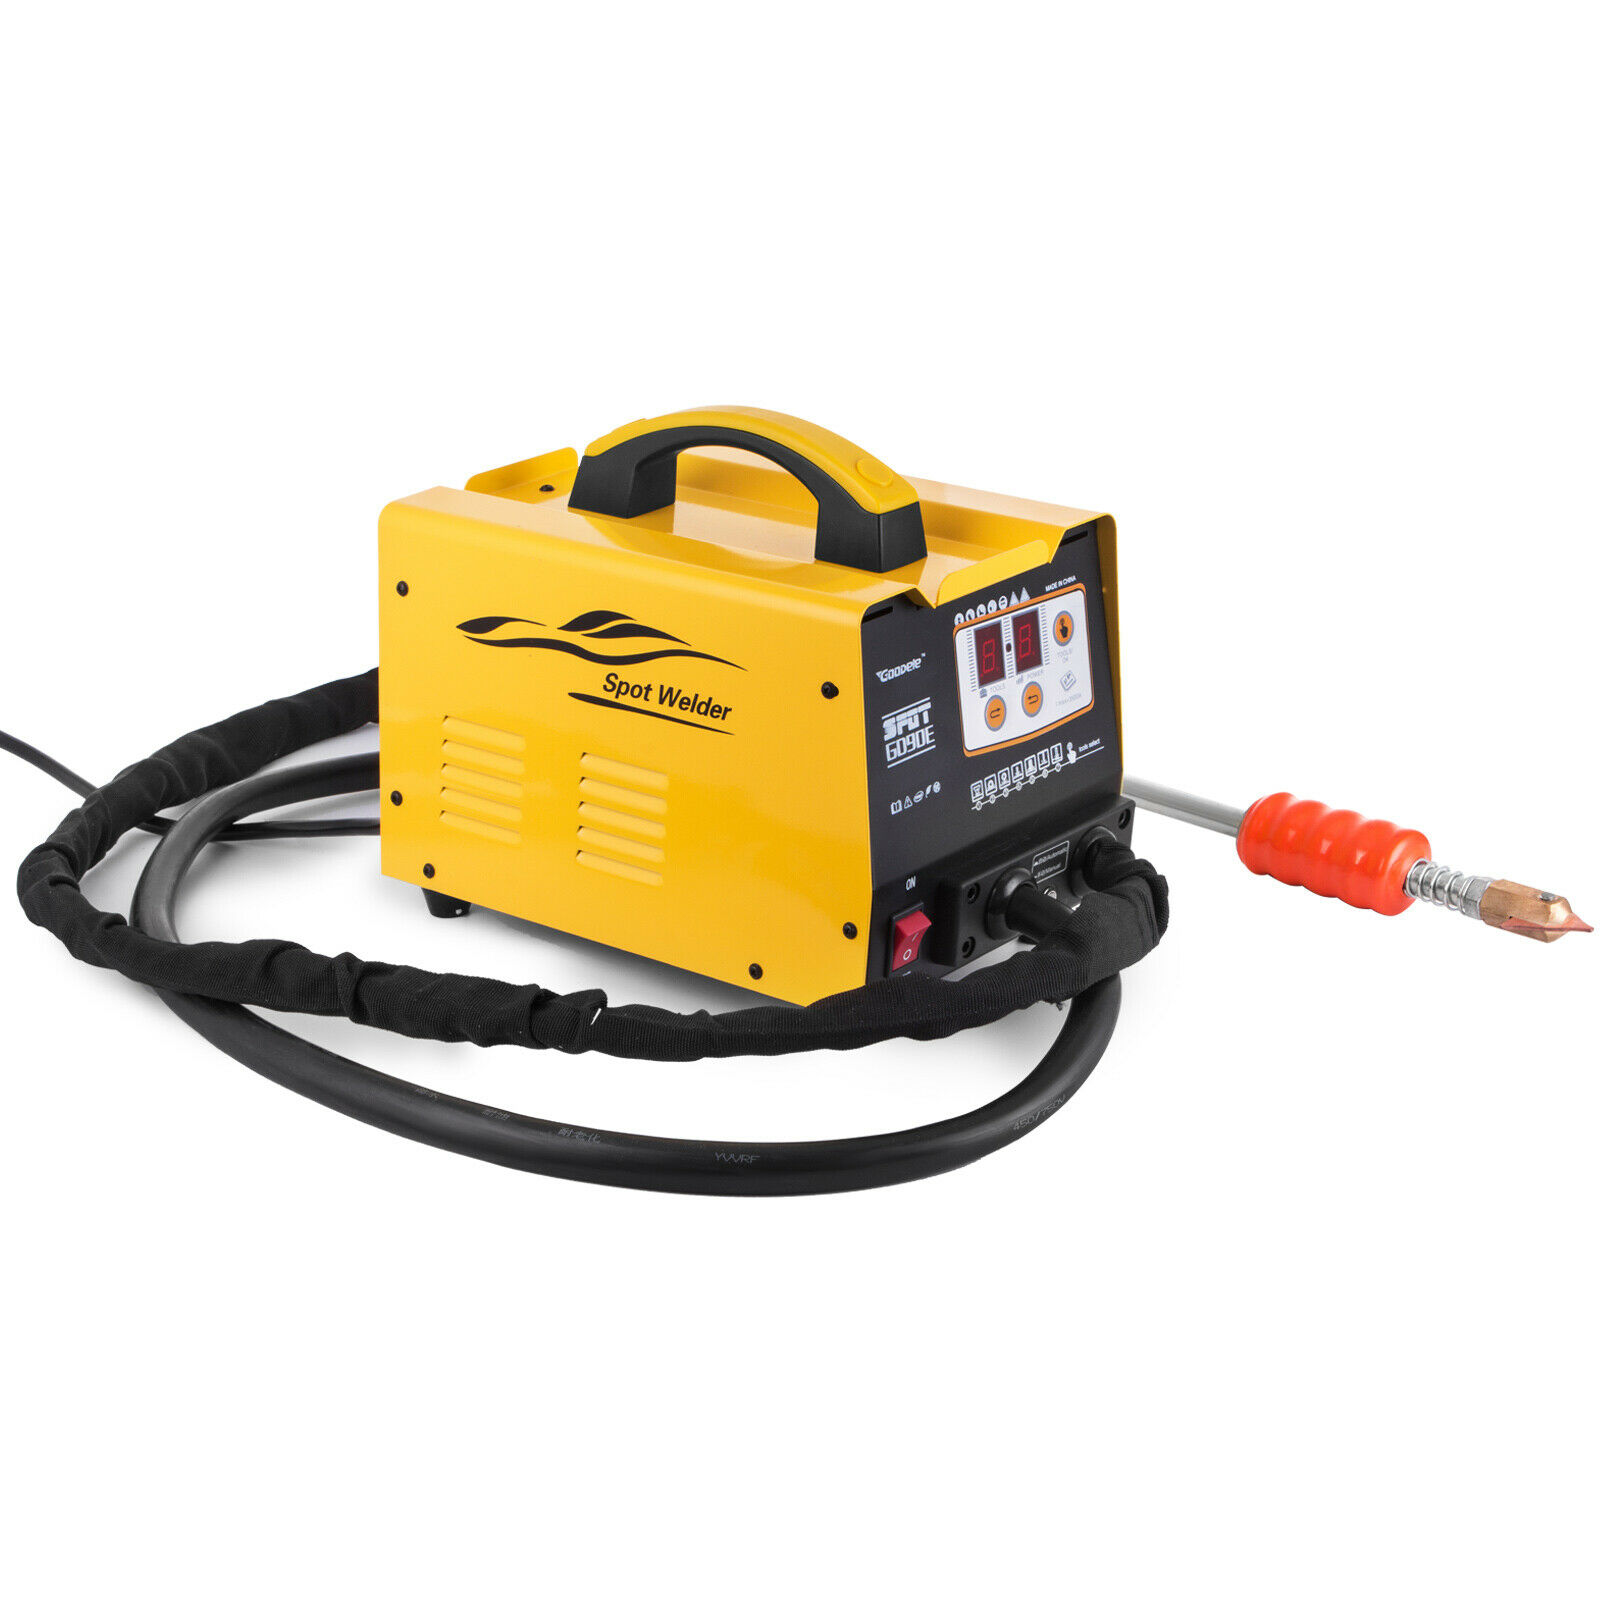 G90E Dent Reminder Car Tool Dent Repair Spotter Welding Machine 220V Welder